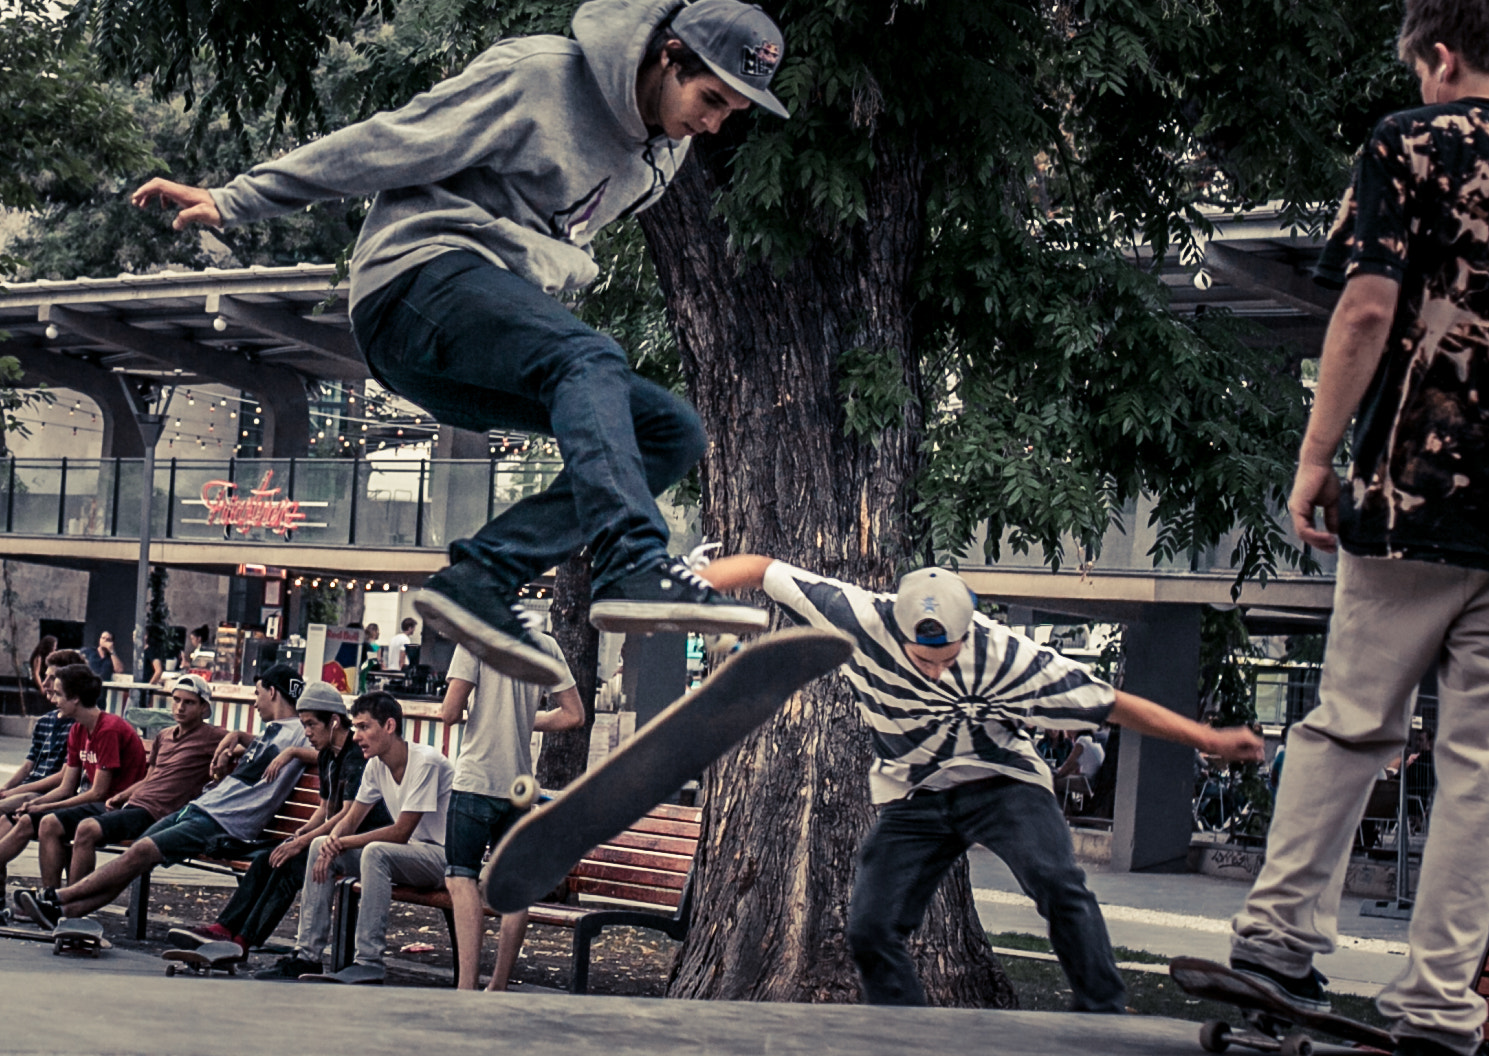 Photograph sk8 by Greg Swiezy on 500px